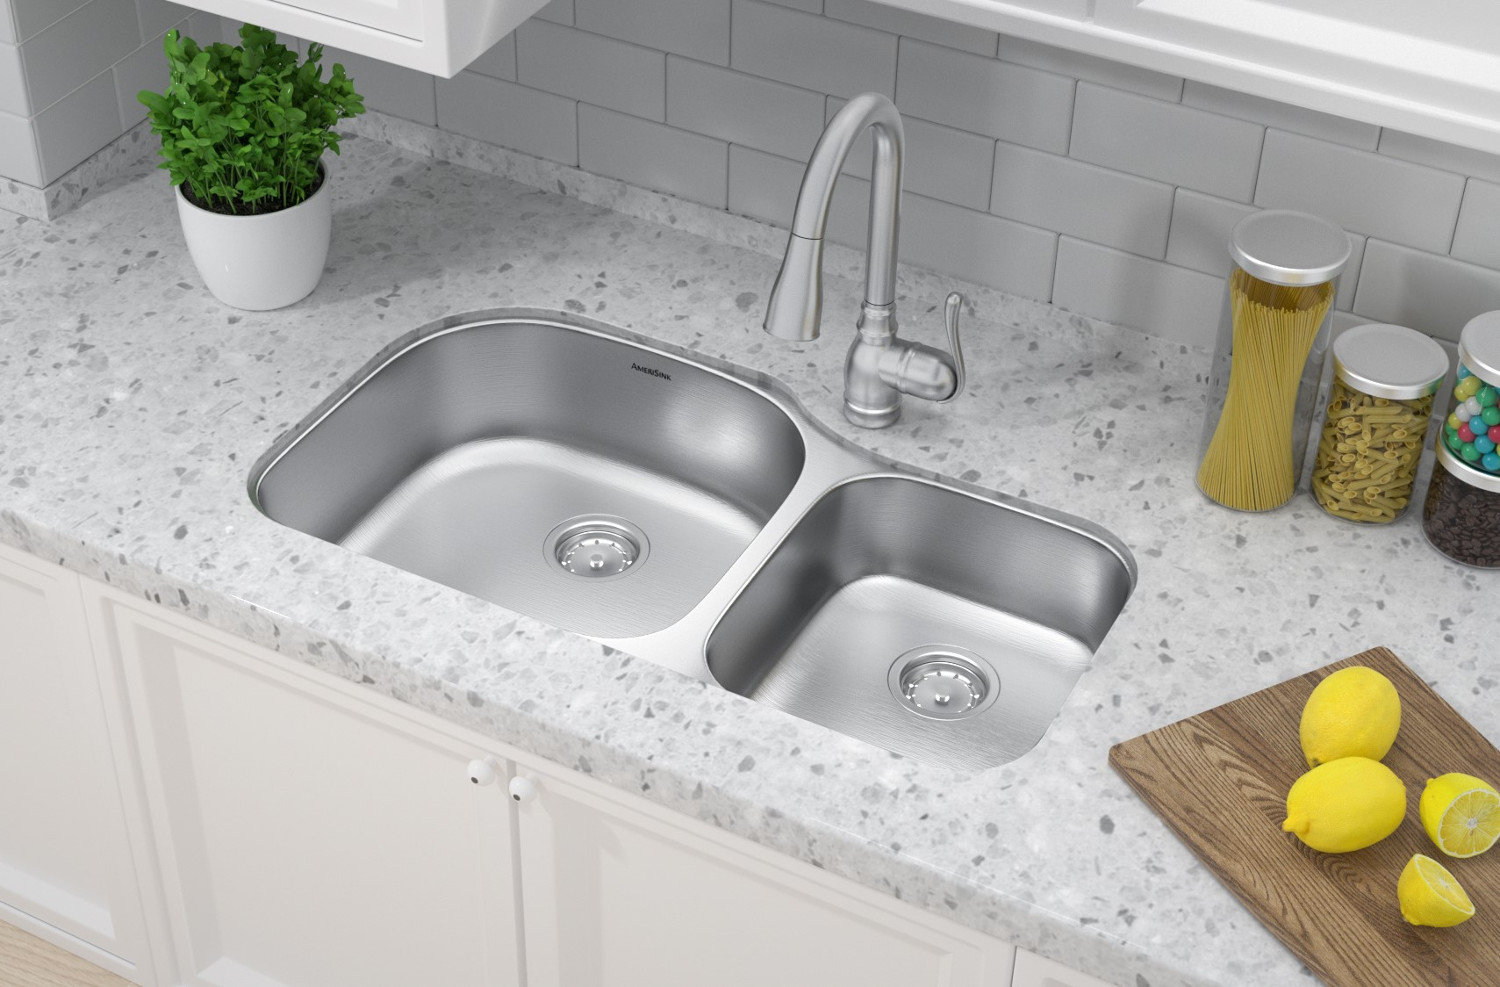 Double Bowl Undermount Deluxe Stainless Steel Kitchen Sink